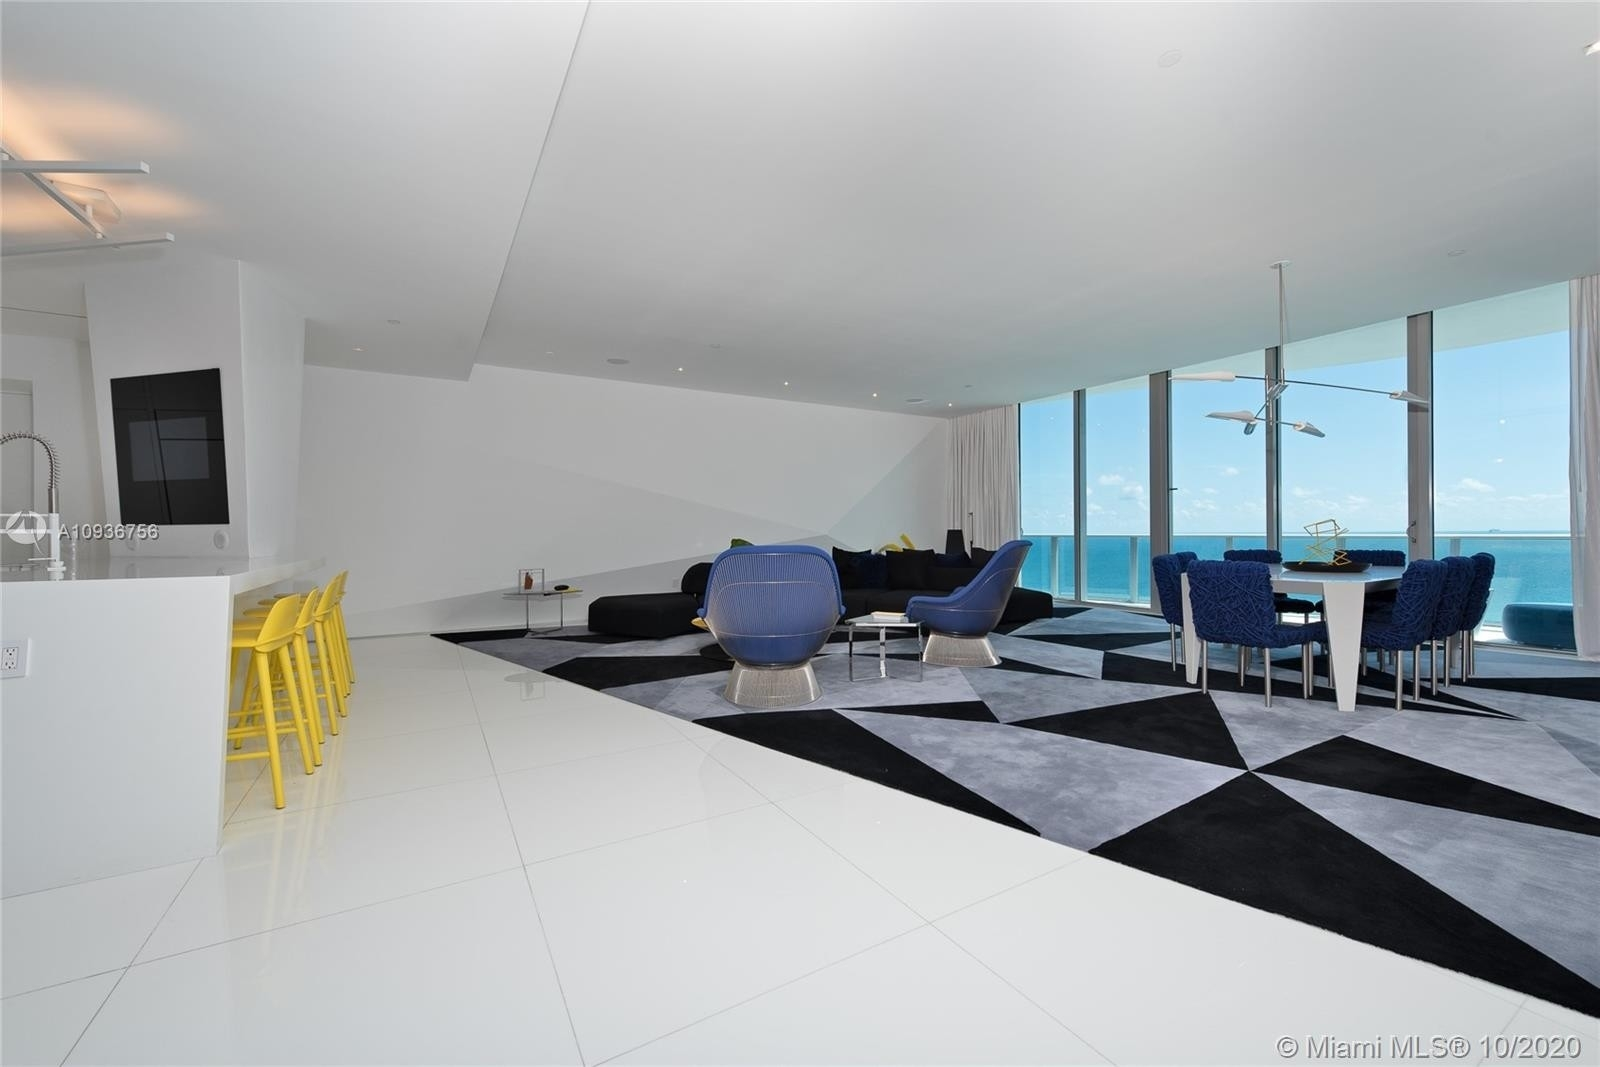 4. Condominiums for Sale at 17475 Collins Ave , 2602 Sunny Isles Beach, FL 33160